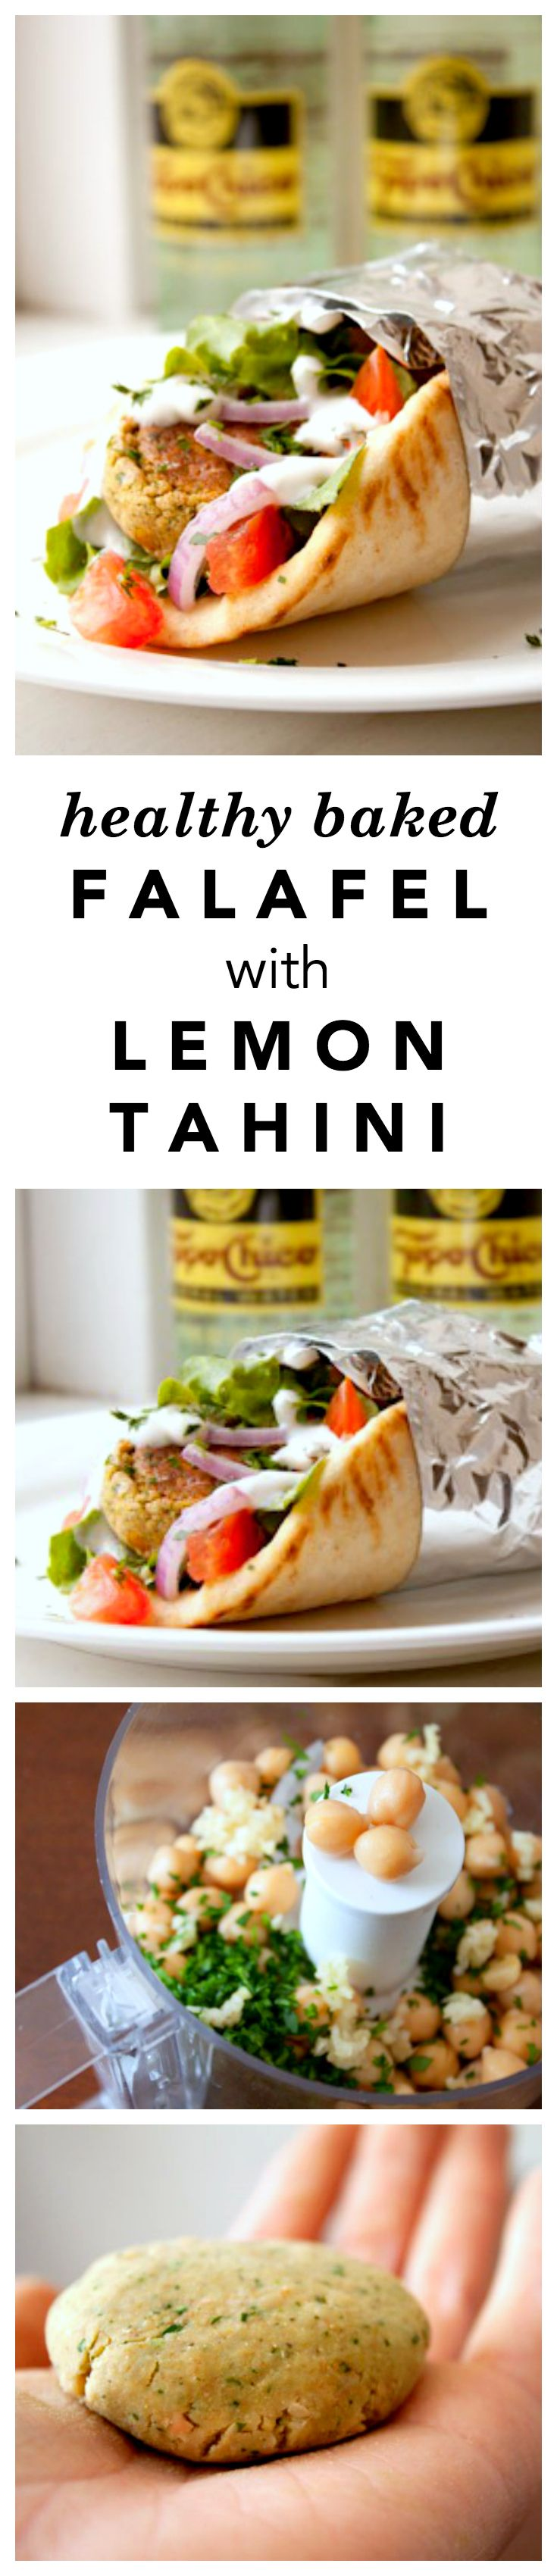 Baked Falafel Recipe with Lemon Tahini Sauce - Skip the fried version and try this lighter, healthier (but just as delicious) baked one! A vegetarian loaded sandwich made with chickpeas and only 531 calories!